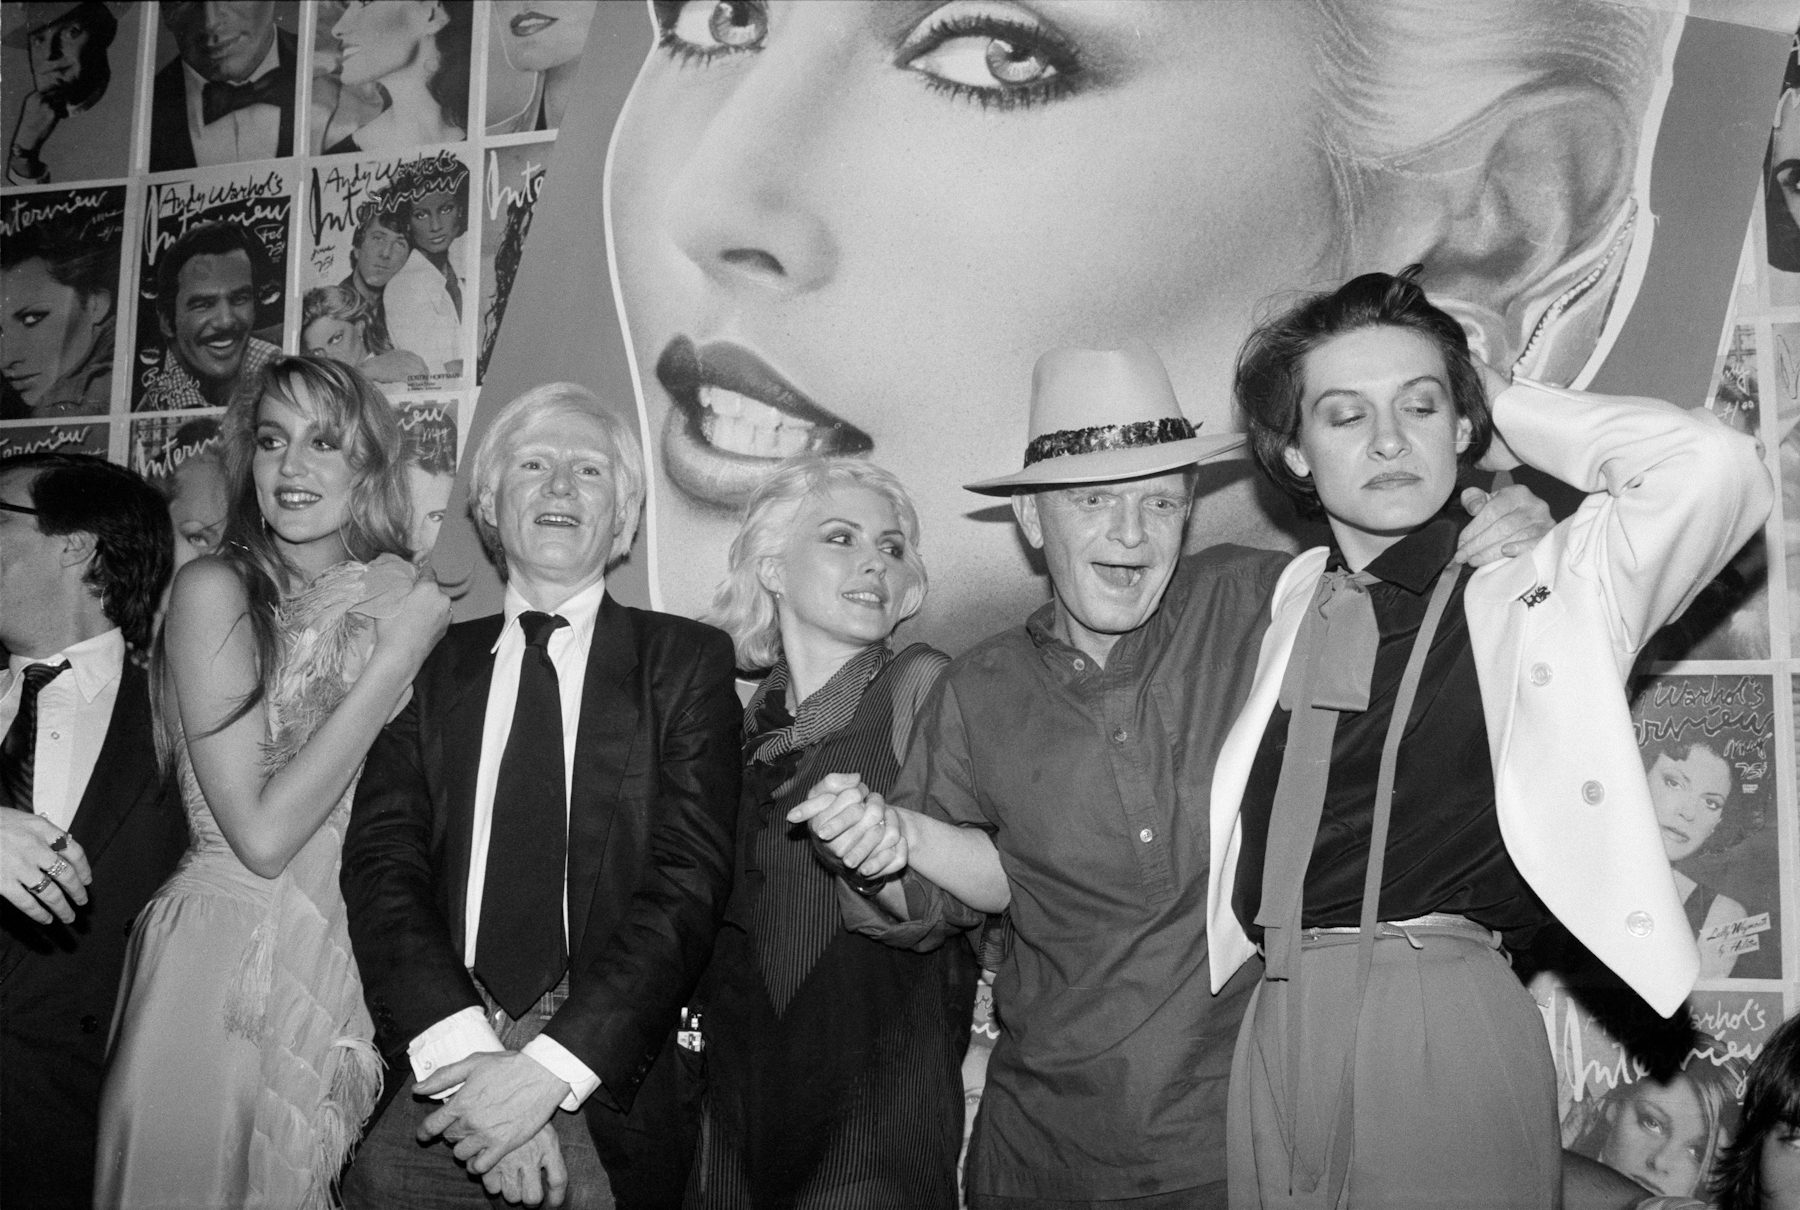 Jerry Hall, Andy Warhol, Deborah Harry, Truman Capote and Paloma Picasso, Studio 54